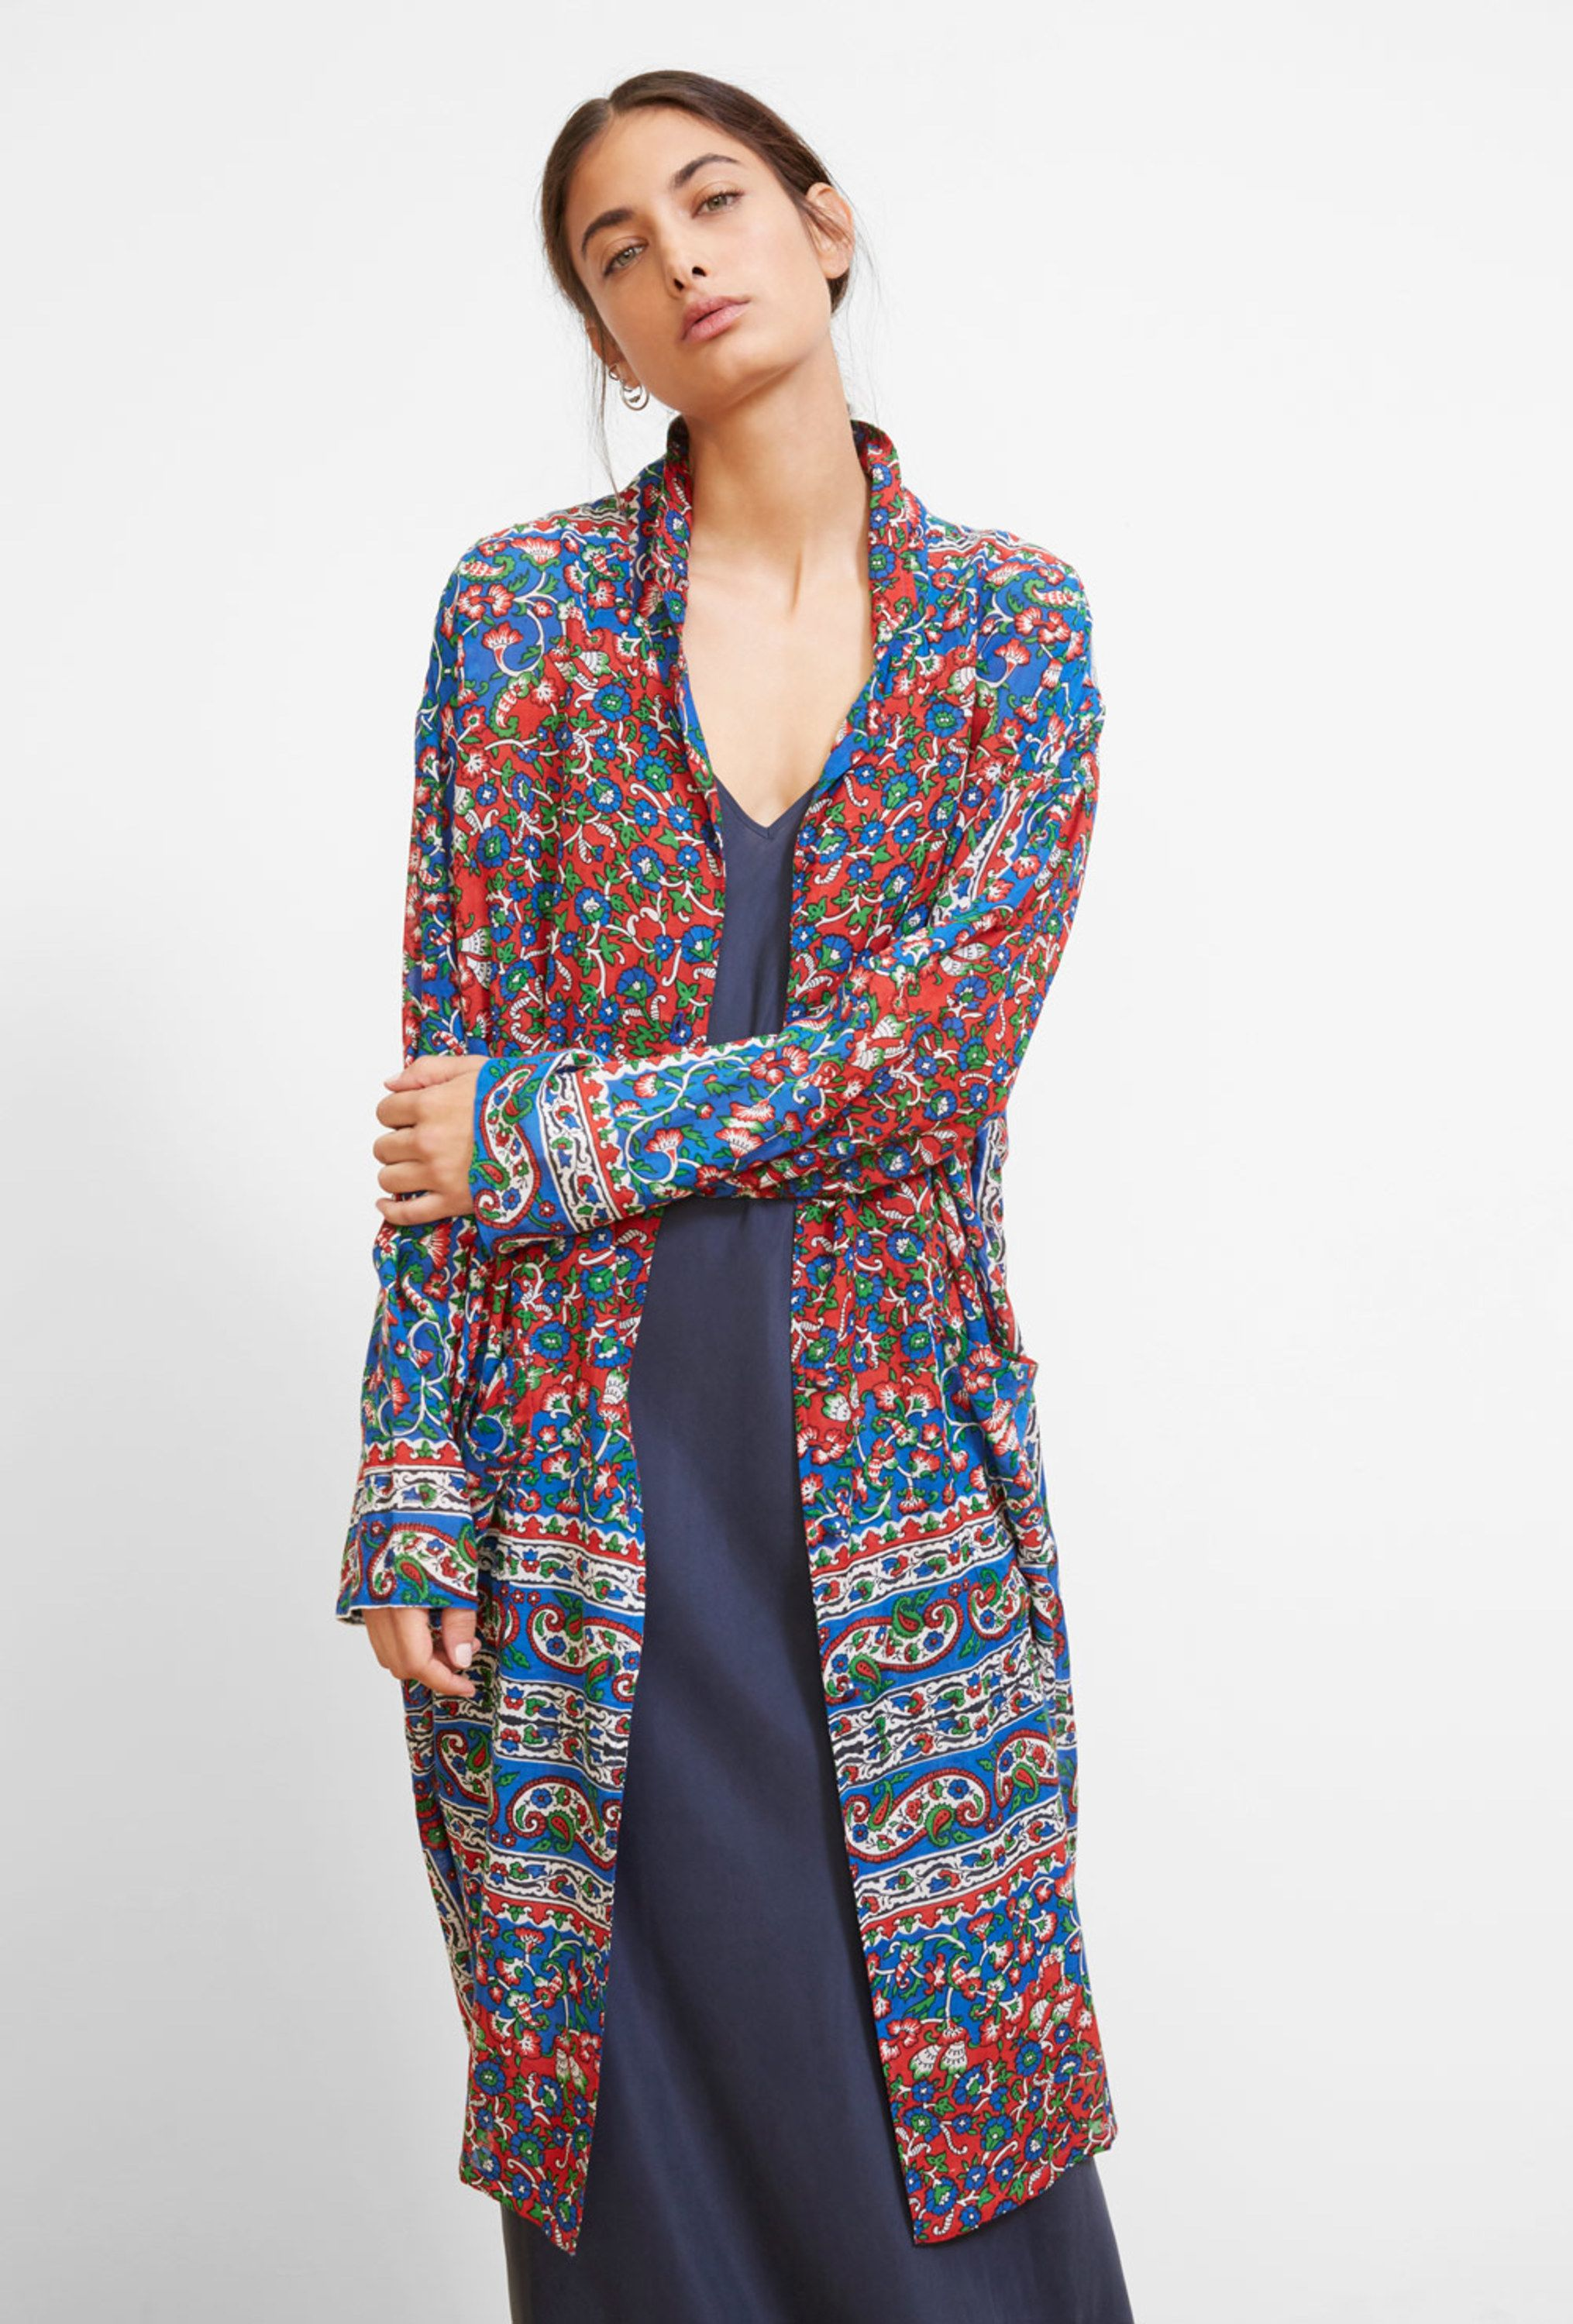 Demoiselles Gurgaon Longue Veste Paris Print Mes EYOwqP0